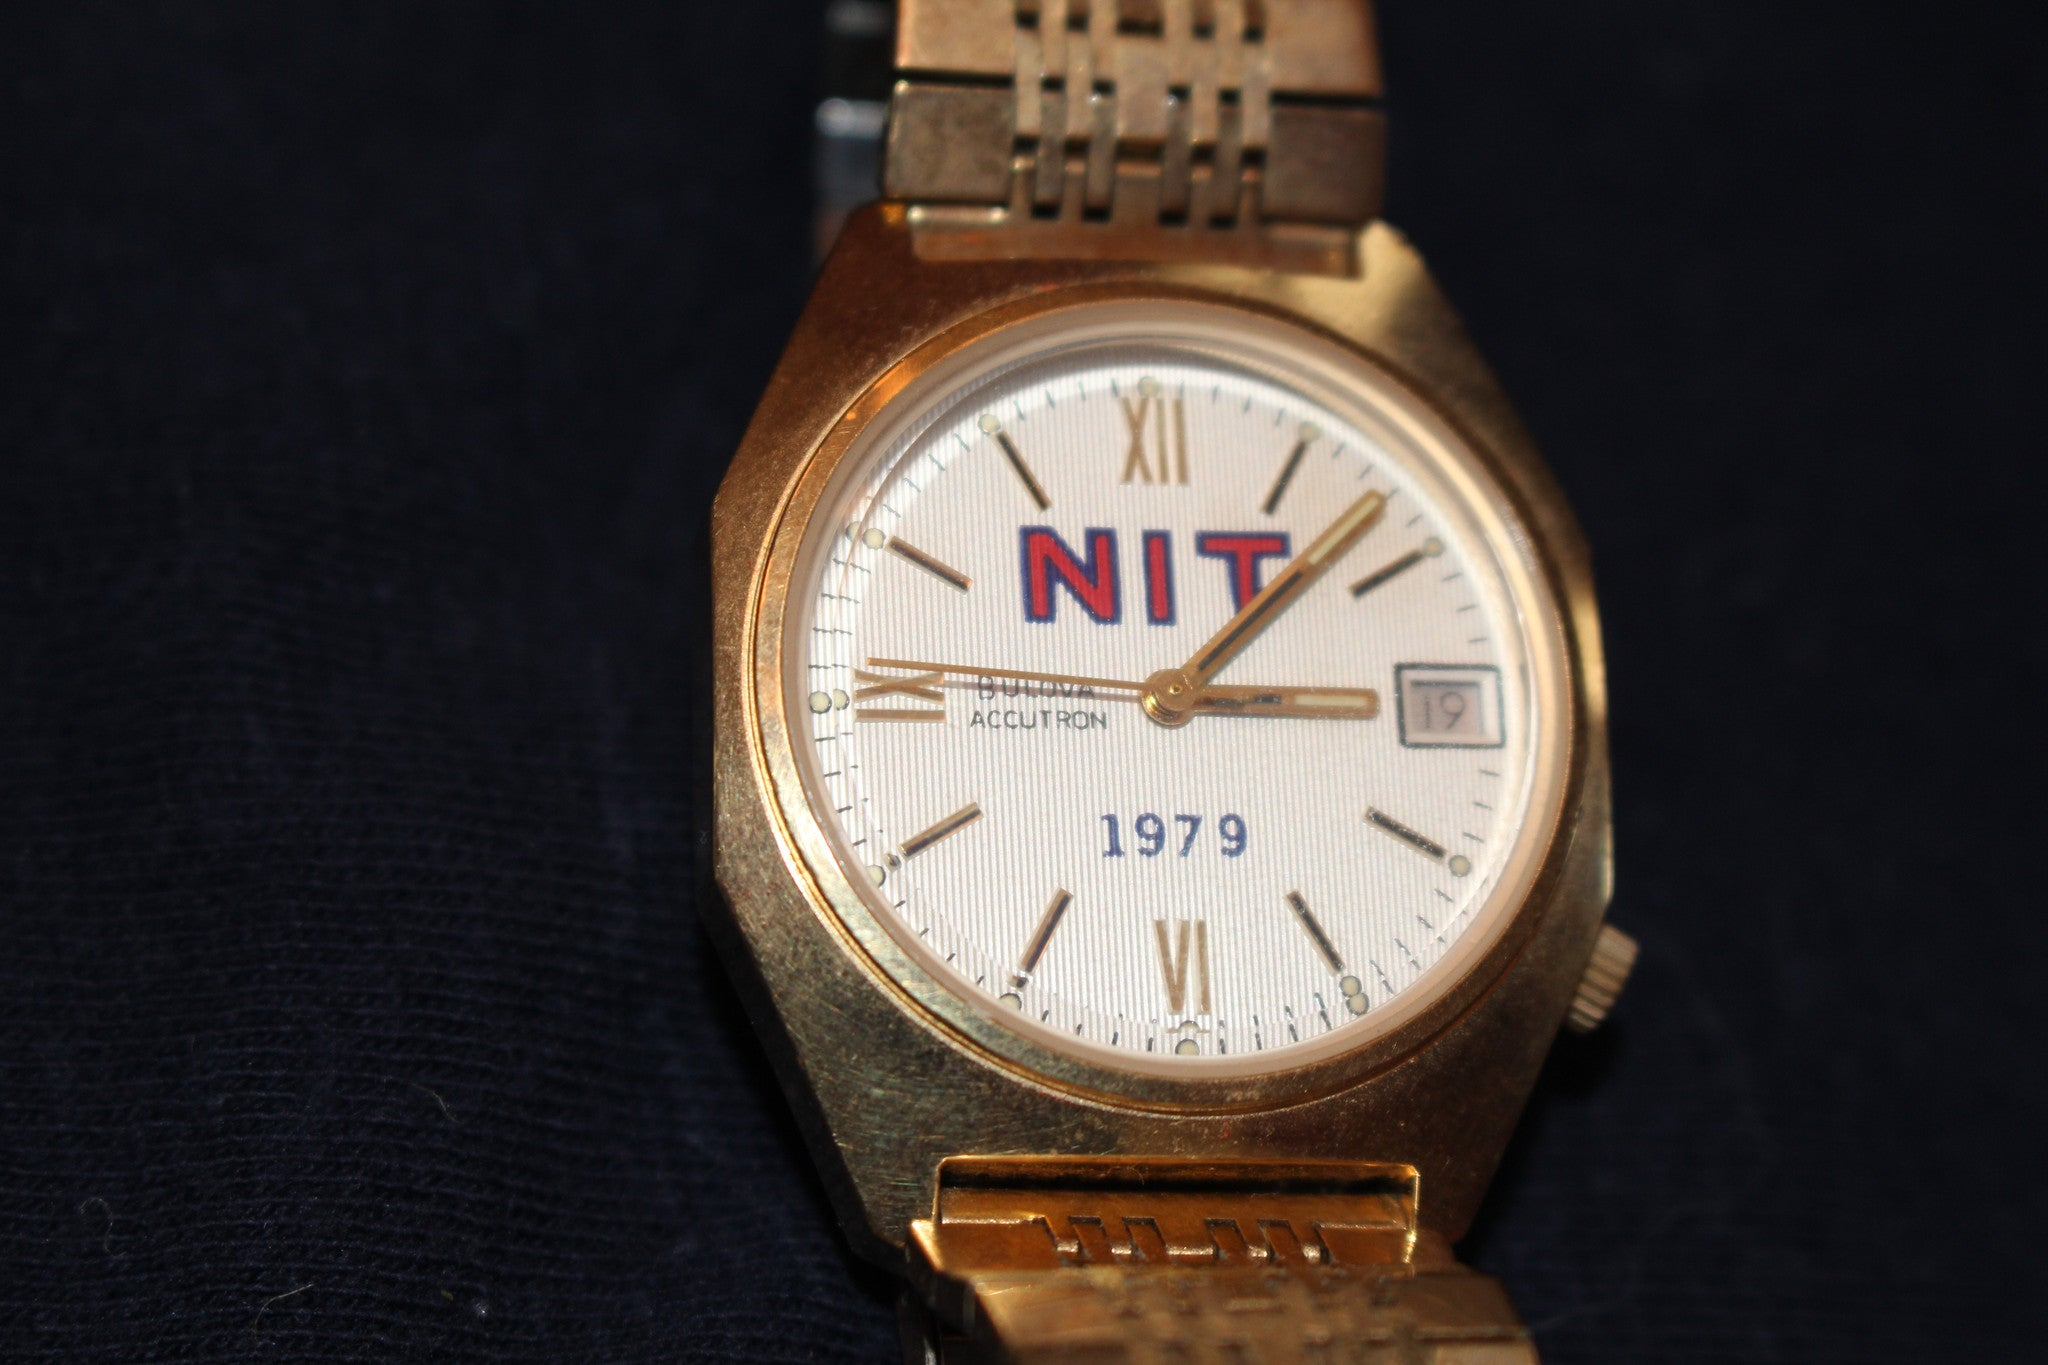 1979 Indiana University NIT Basketball Champions Players Watch - Vintage Indy Sports